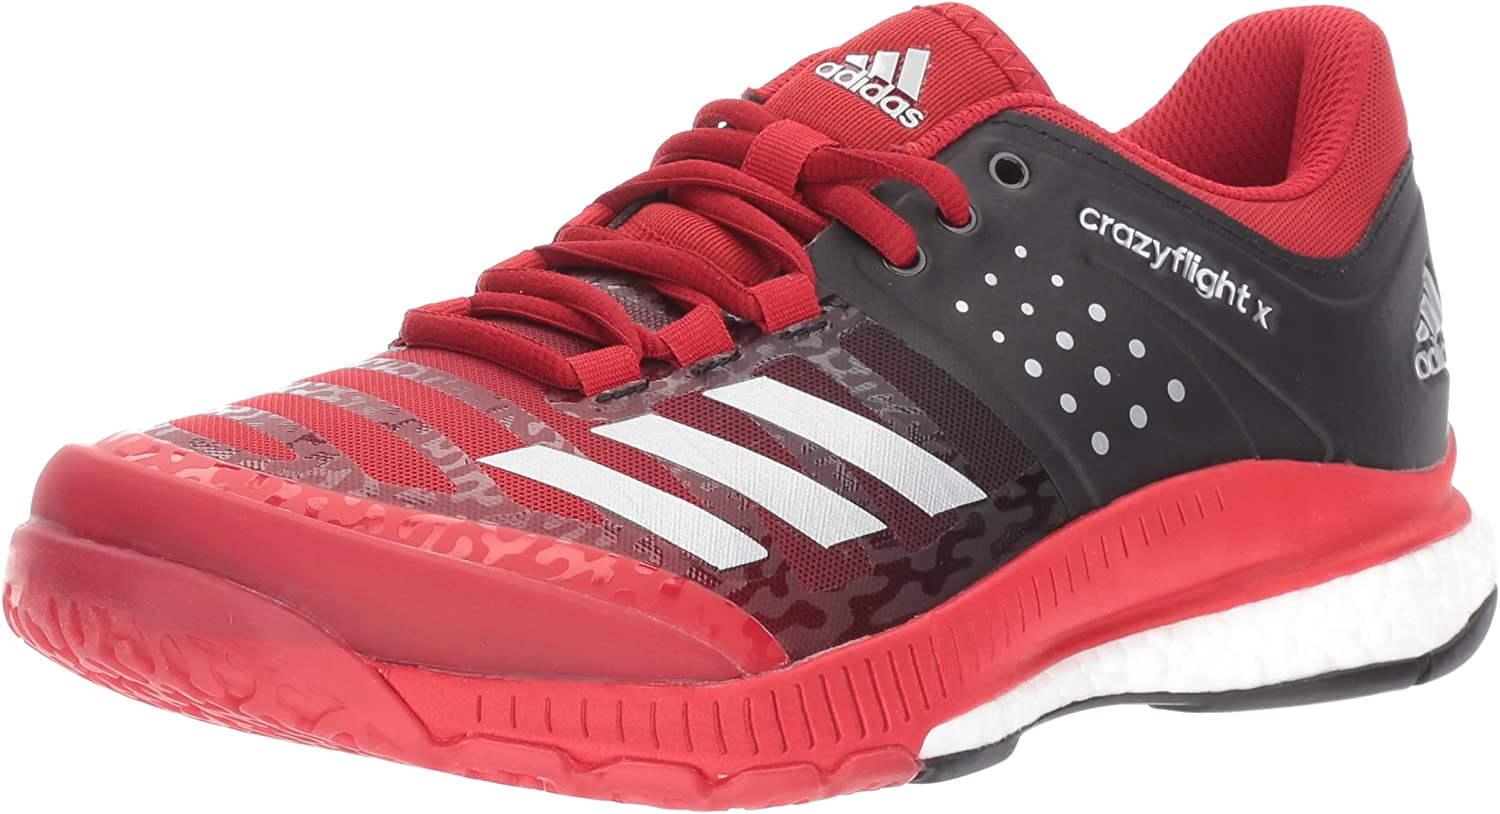 Adidas Women's shoes Crazyflight X Volleyball shoes